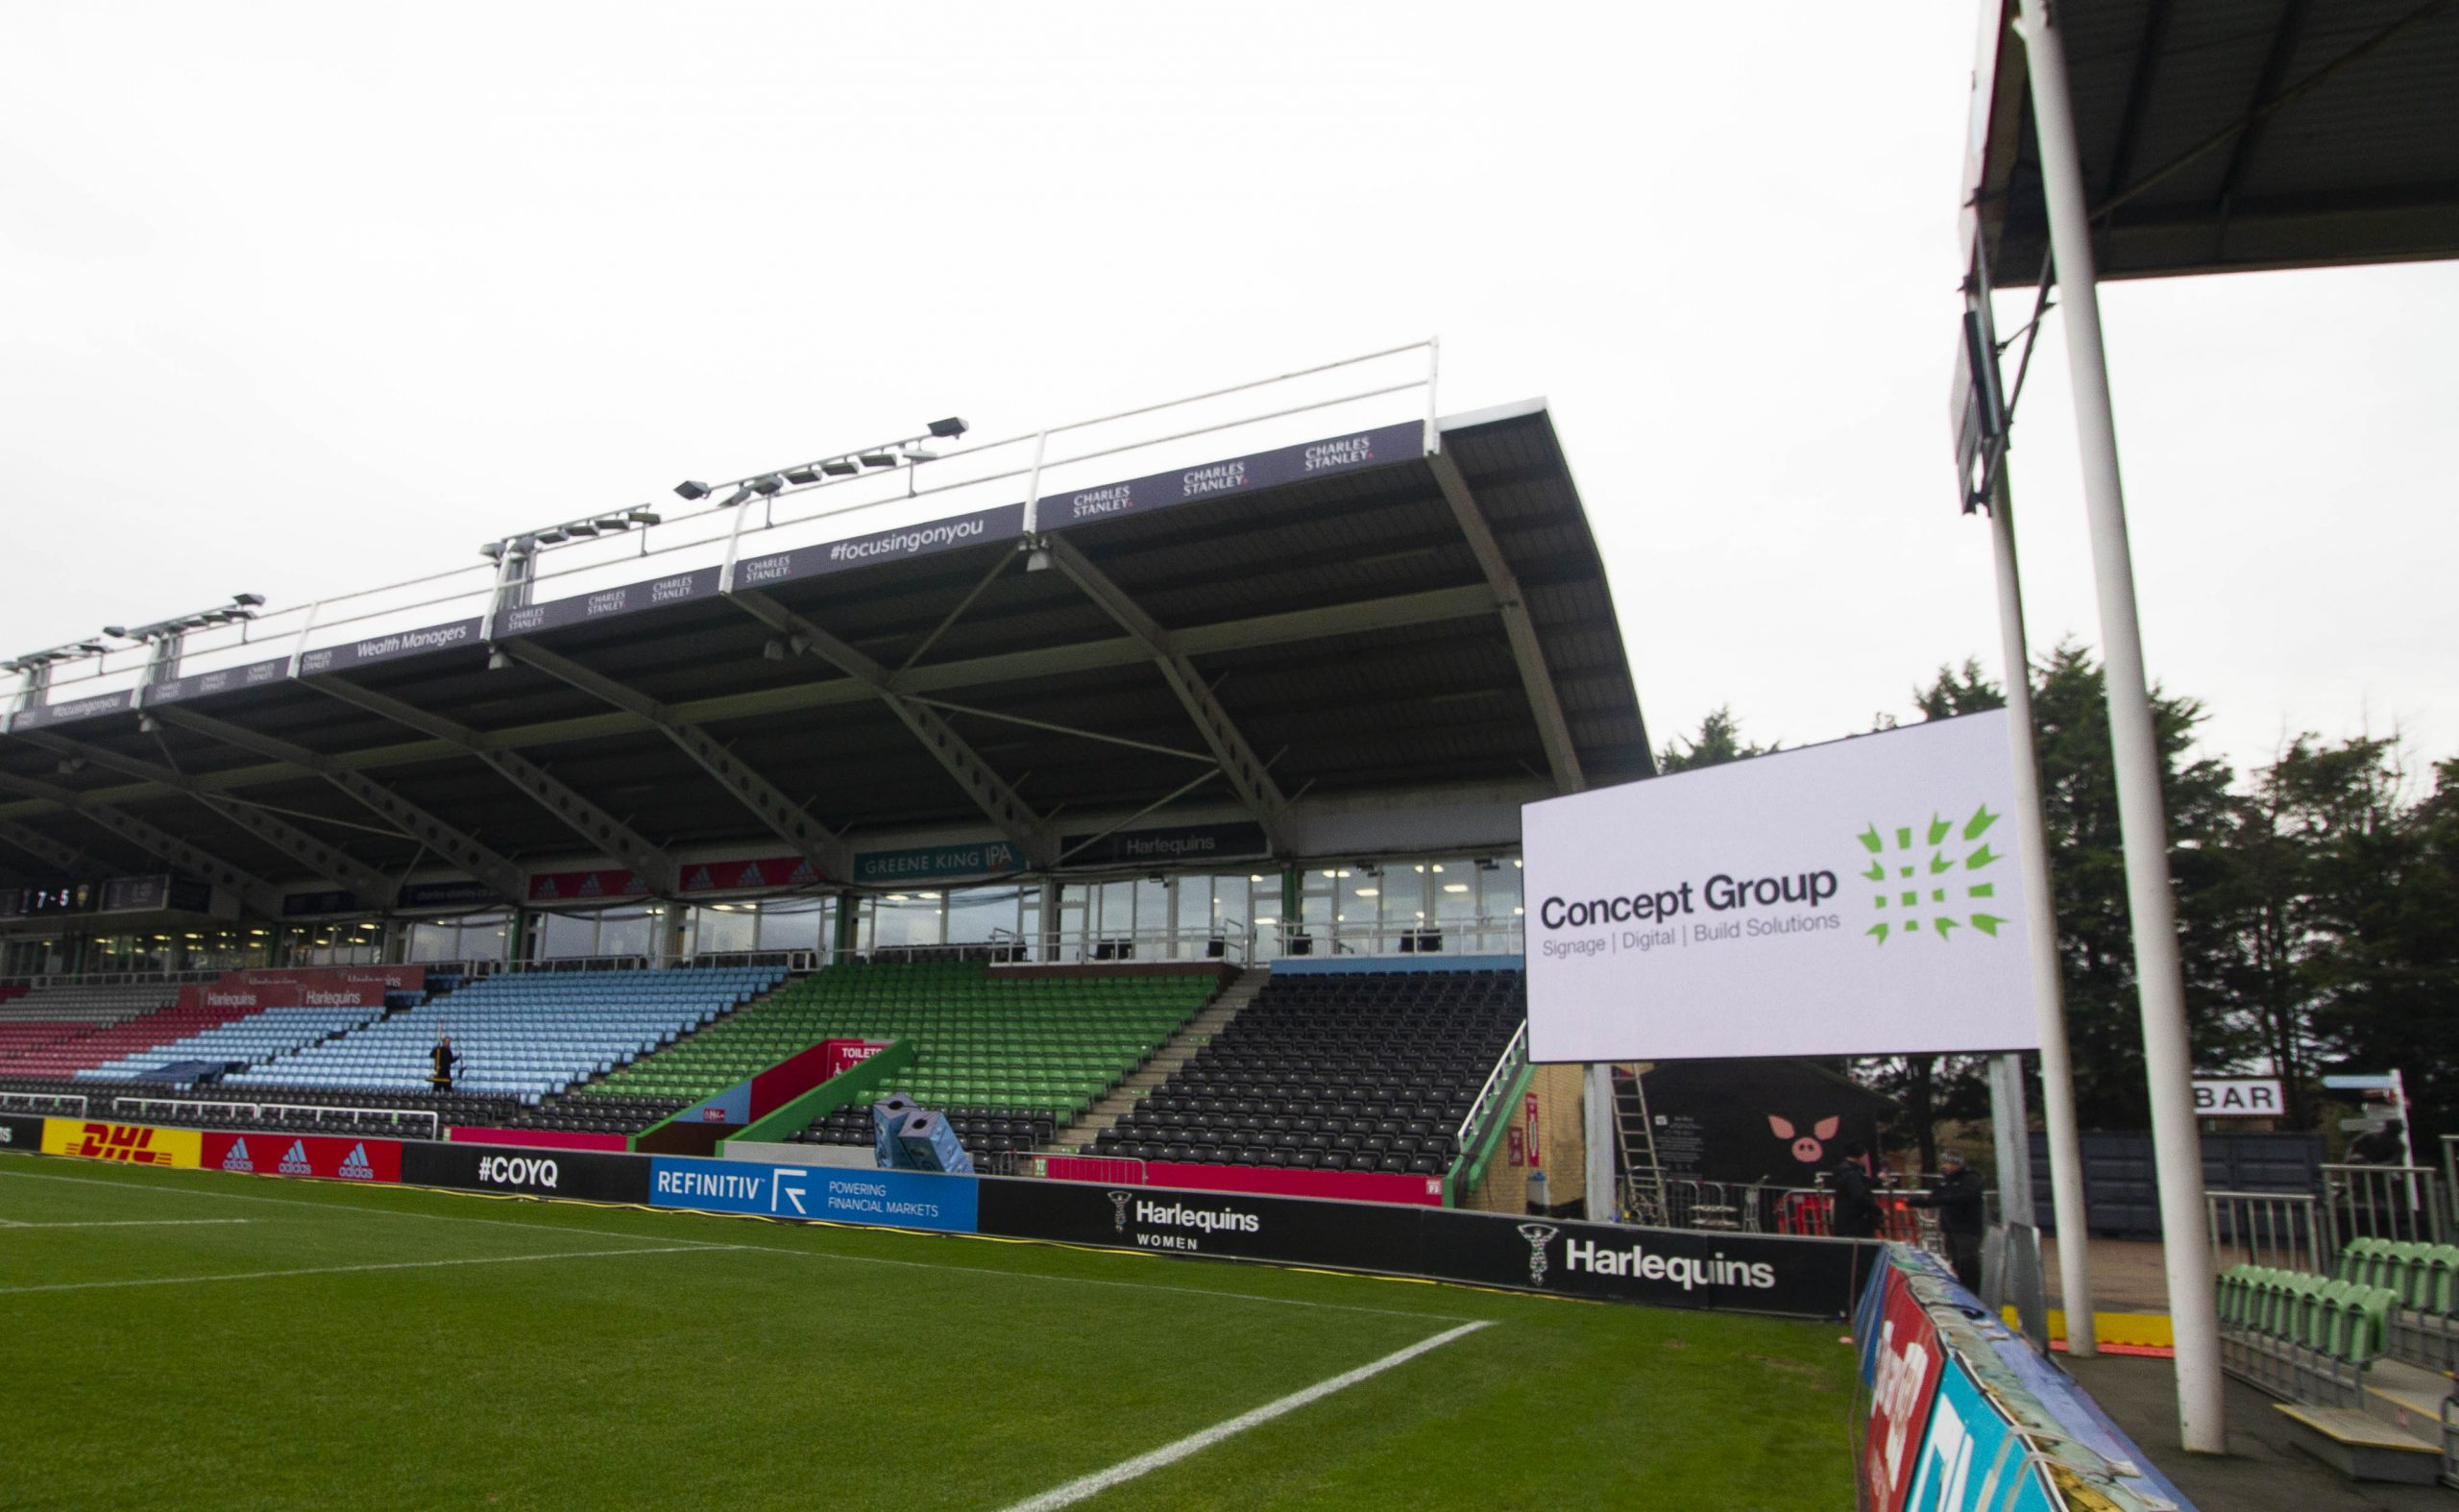 Harlequins-Rugby-Screen-Concept-Group-7